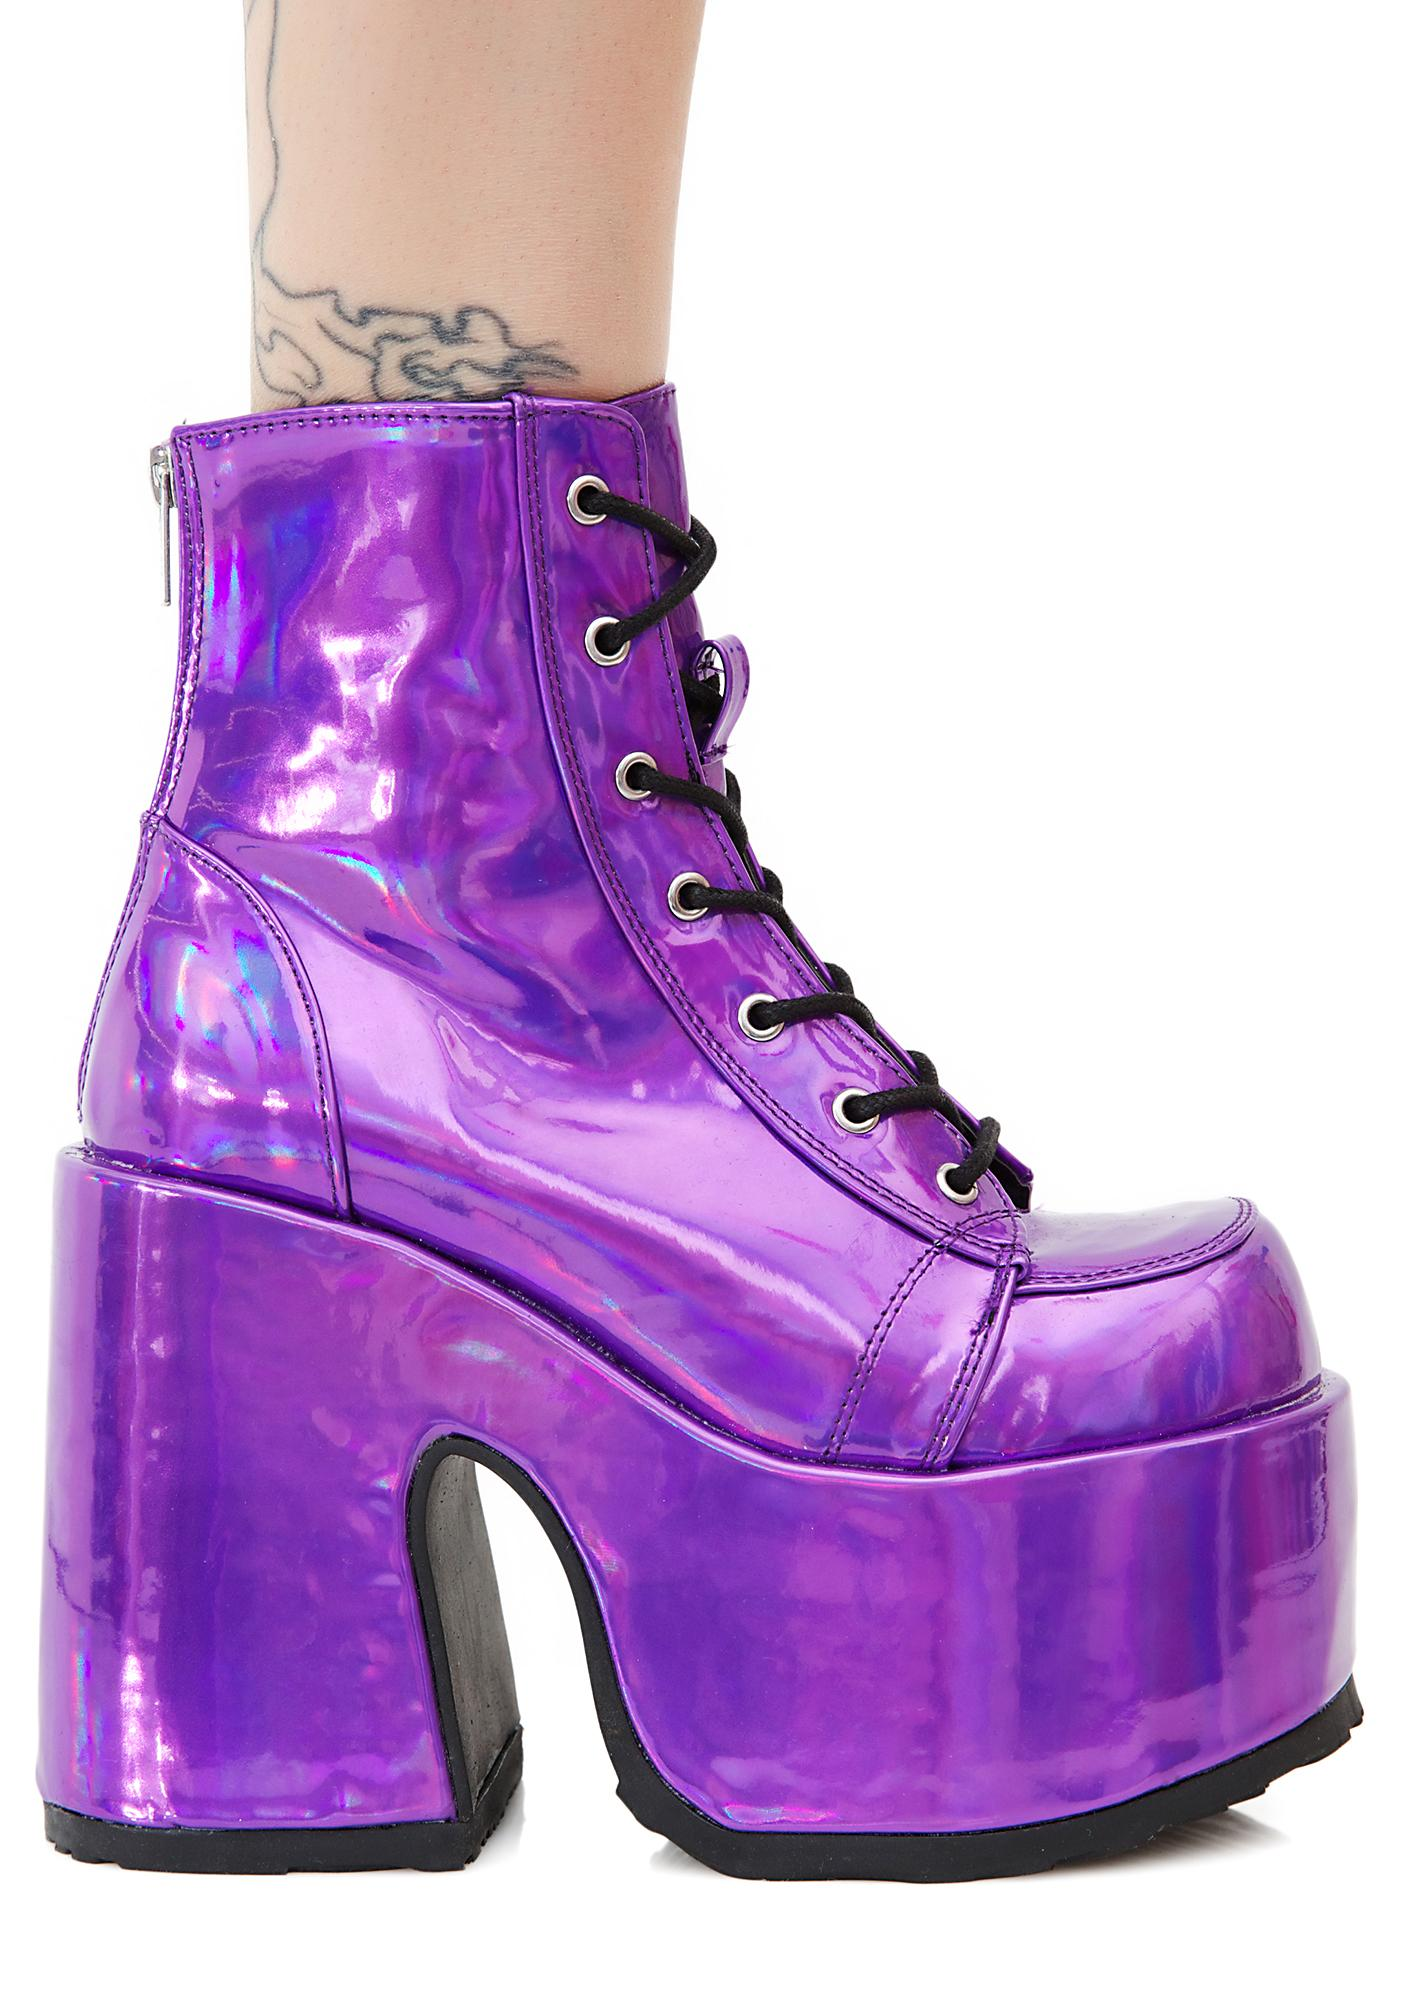 69ca0af5a3d7a Demonia Rave Royalty Platform Boots | Dolls Kill